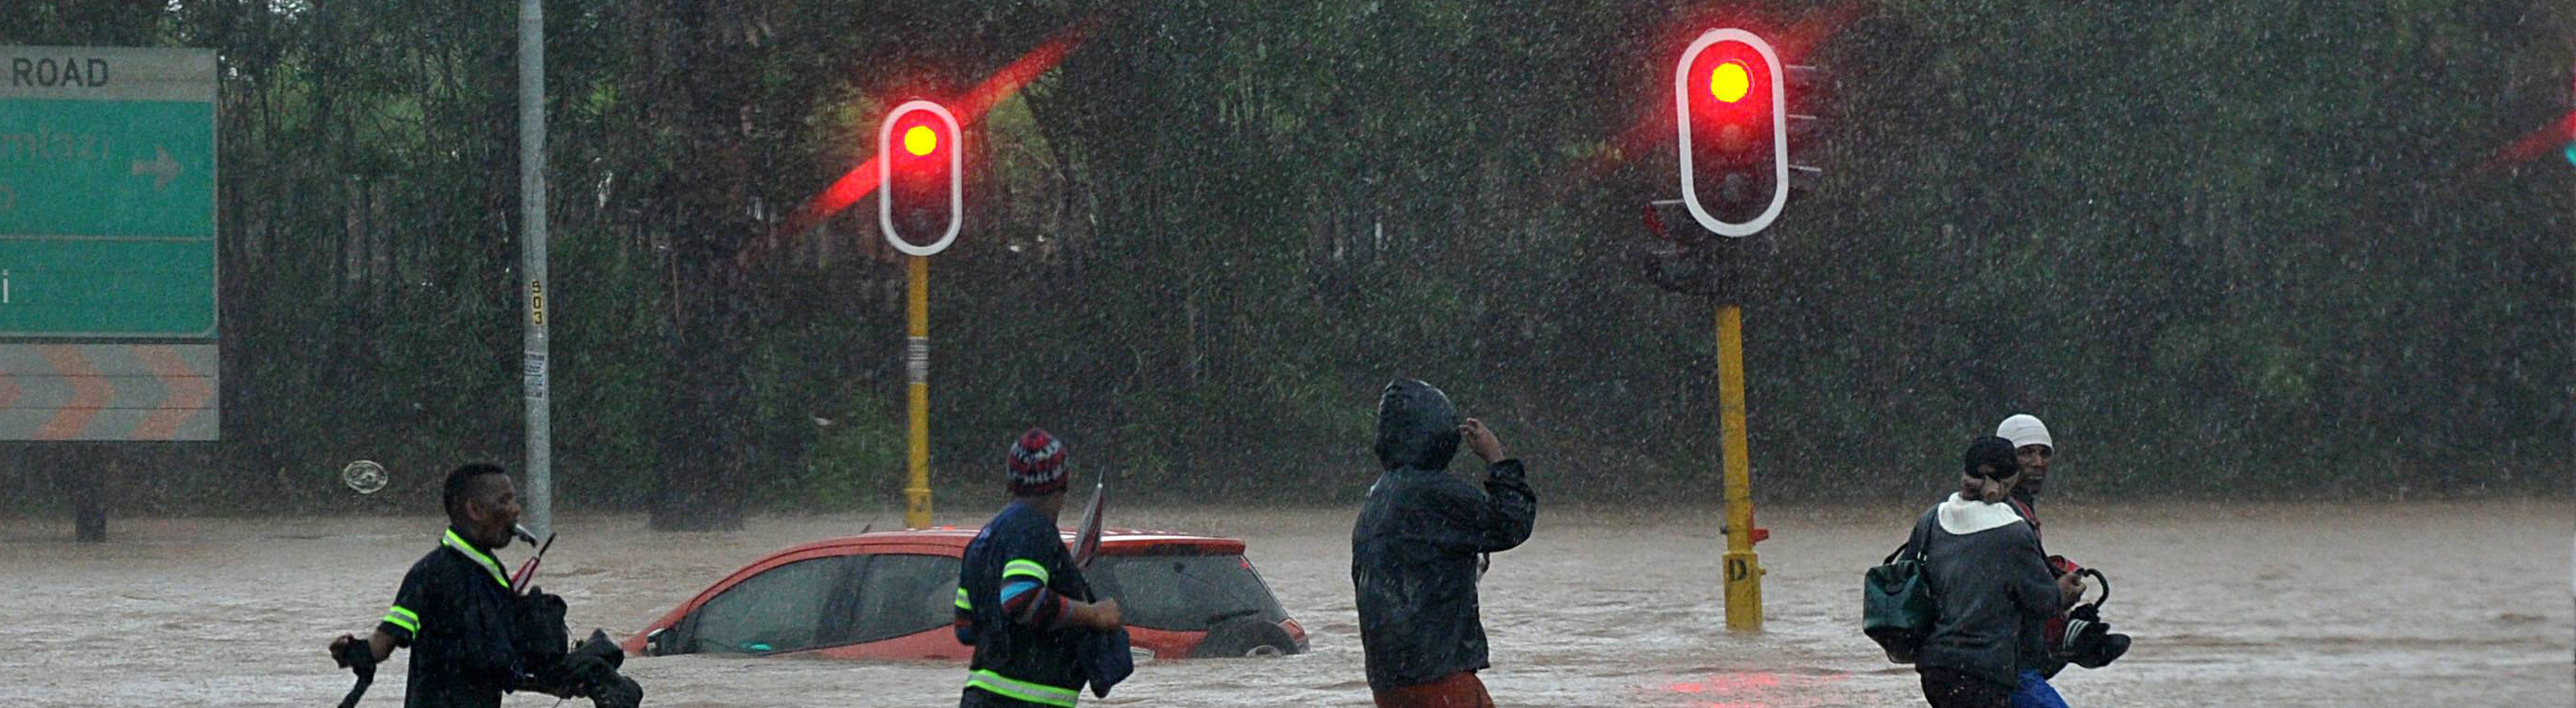 KZN hit by flash floods DURBAN, SOUTH AFRICA OCTOBER 10: A car is seen floating on the Durban roads during severe floods on October 10, 2017 in Durban, South Africa. The heavy flash floods in KZN have claimed at least three lives, damaged five state hospitals and have flooded countless homes and buildings.